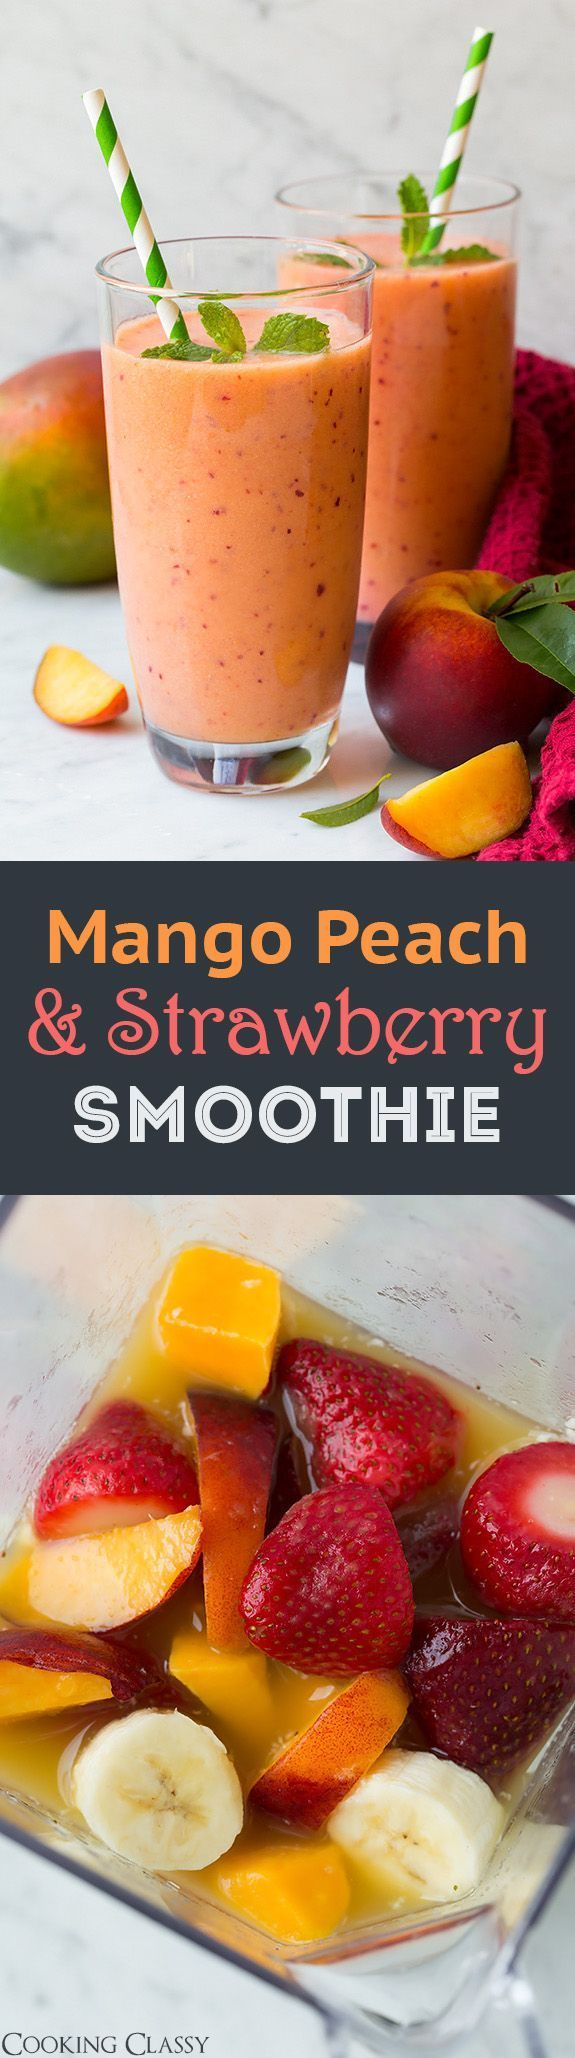 Mango Peach and Strawberry Smoothie - SO refreshing! Loved this smoothie so did my kids!